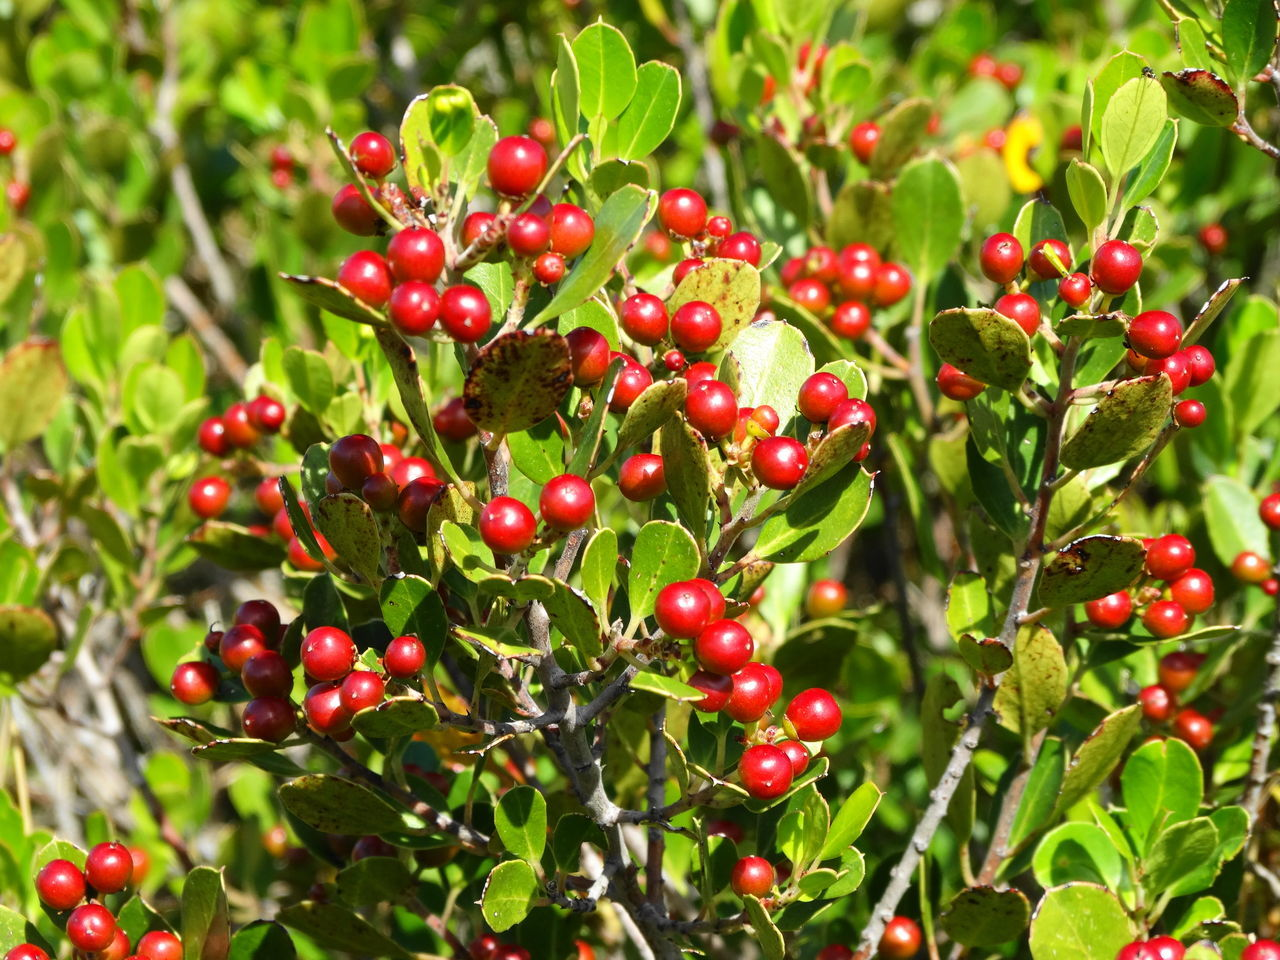 fruit, red, growth, food and drink, focus on foreground, food, growing, freshness, raw coffee bean, leaf, rowanberry, nature, outdoors, cherry, tree, day, green color, plant, no people, agriculture, branch, healthy eating, close-up, water, beauty in nature